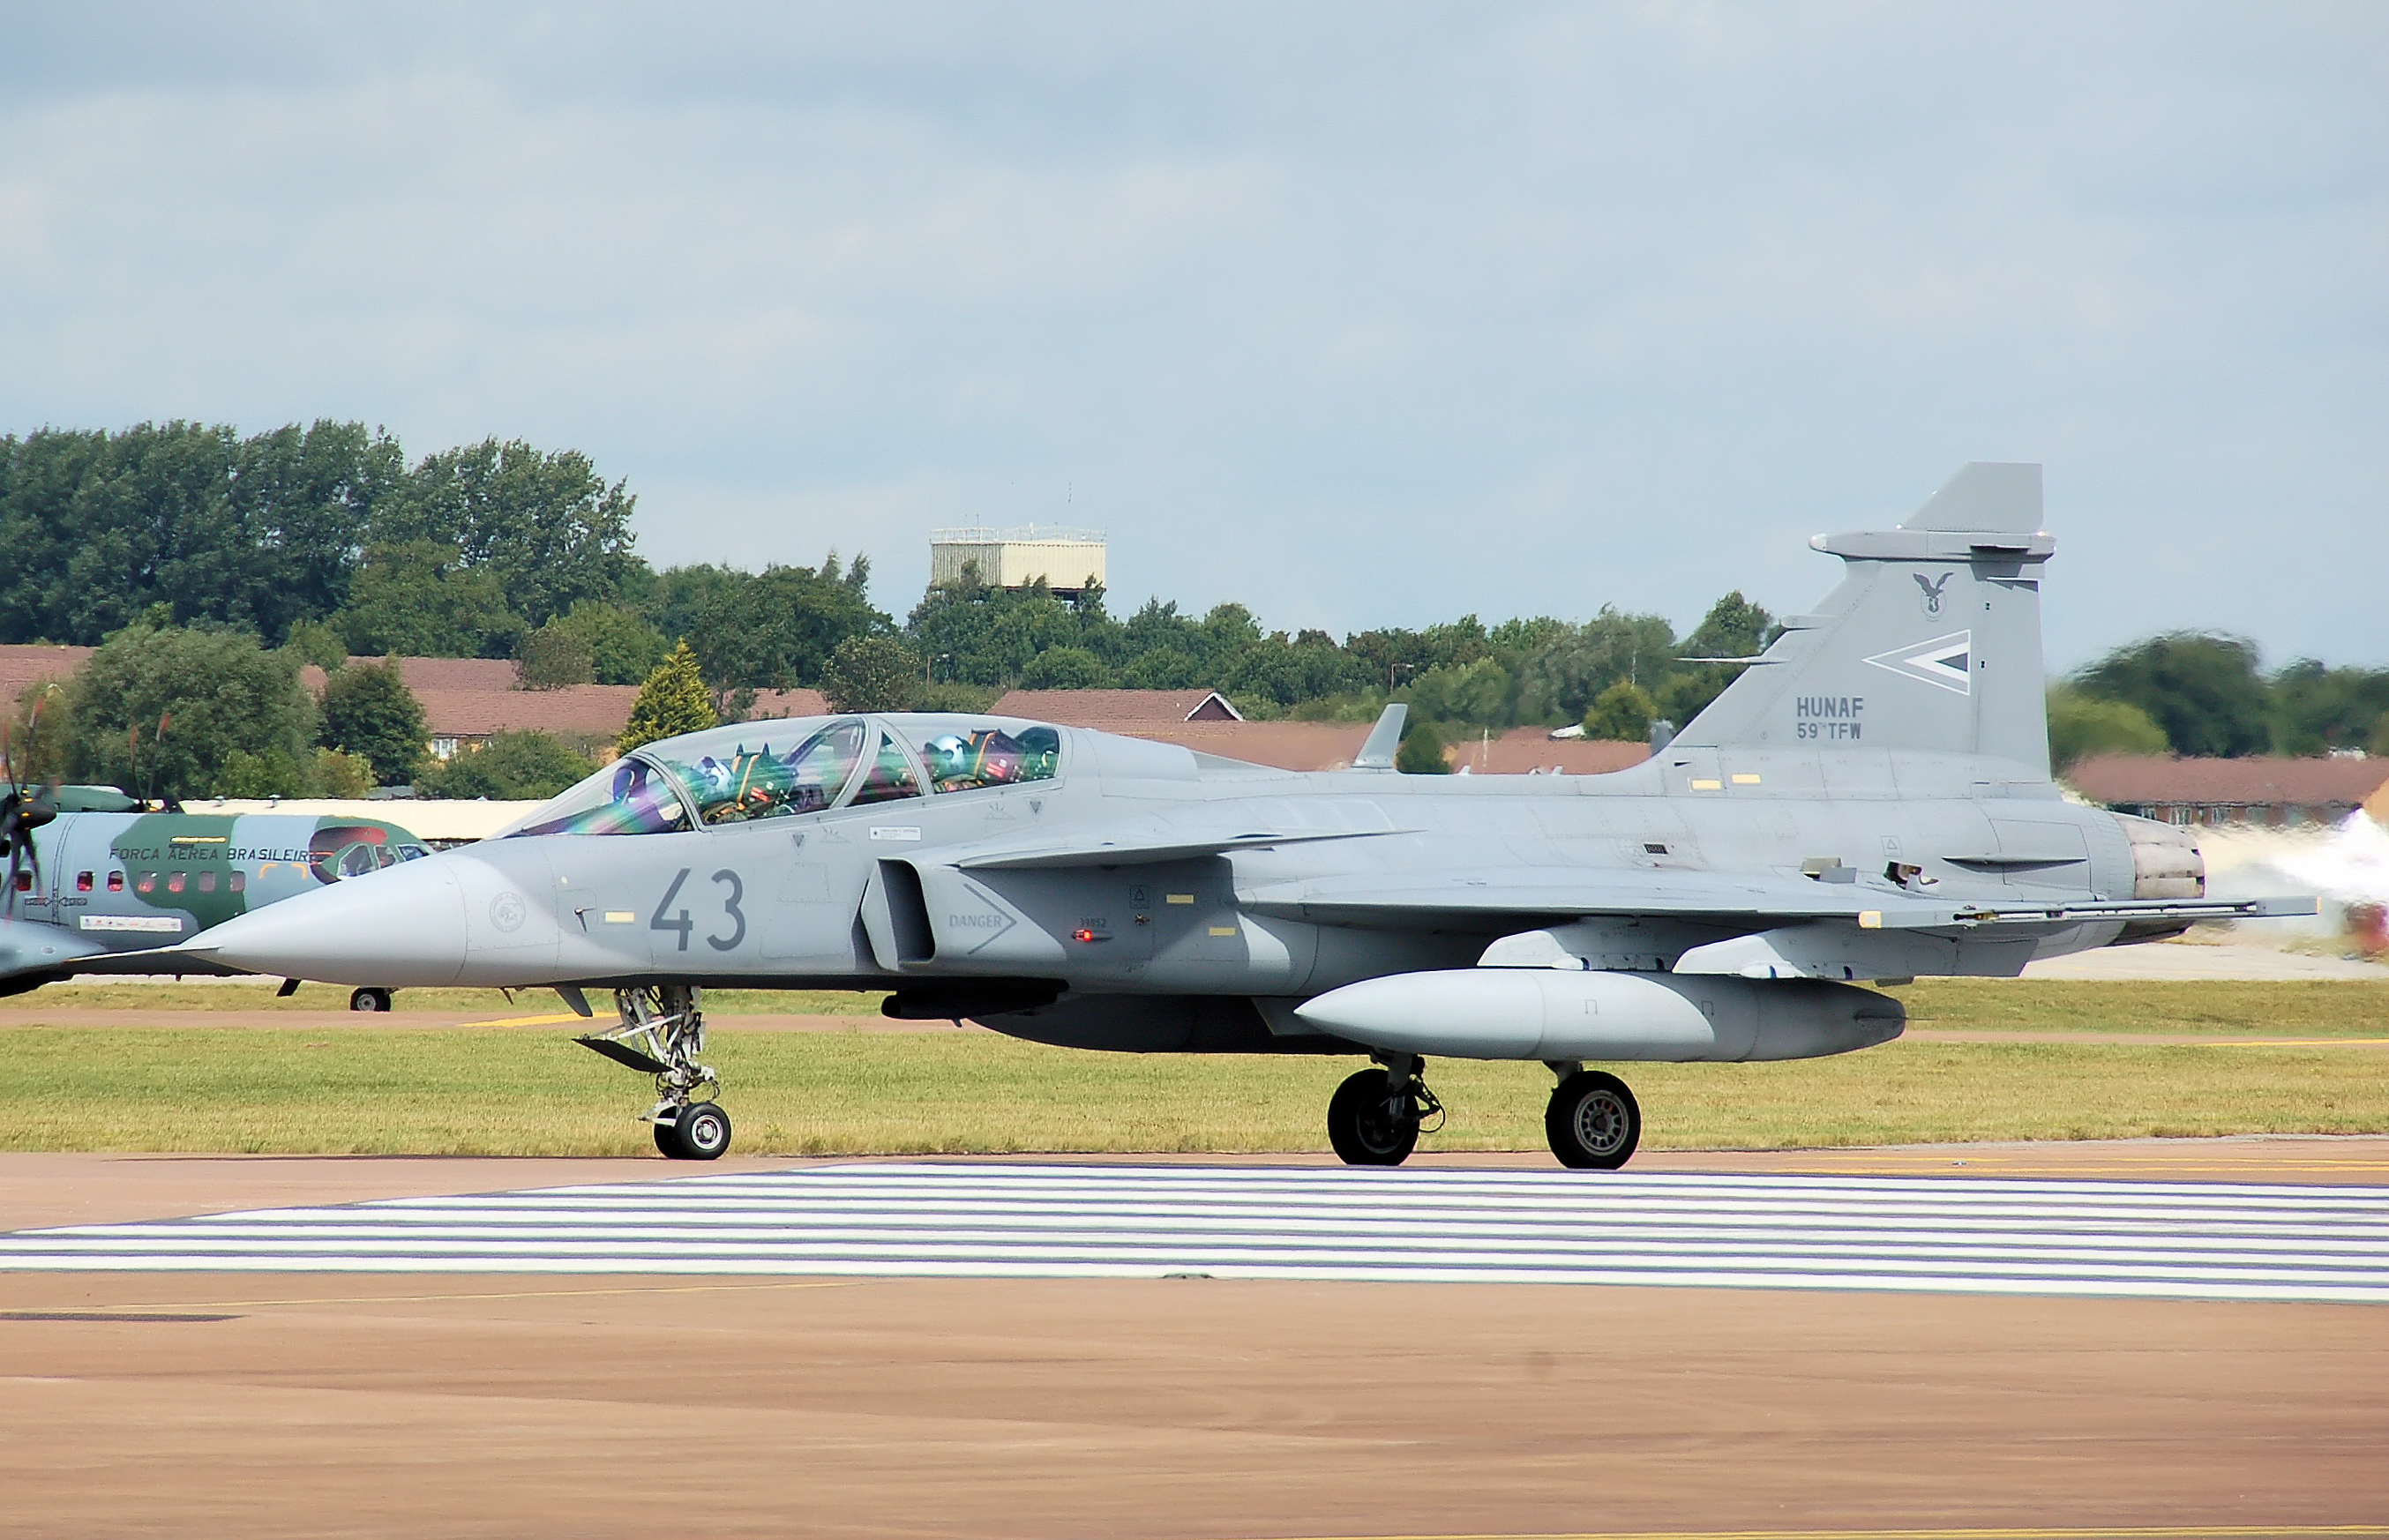 http://upload.wikimedia.org/wikipedia/commons/6/6e/Hungarian_air_force_saab_jas39d_gripen_arp.jpg